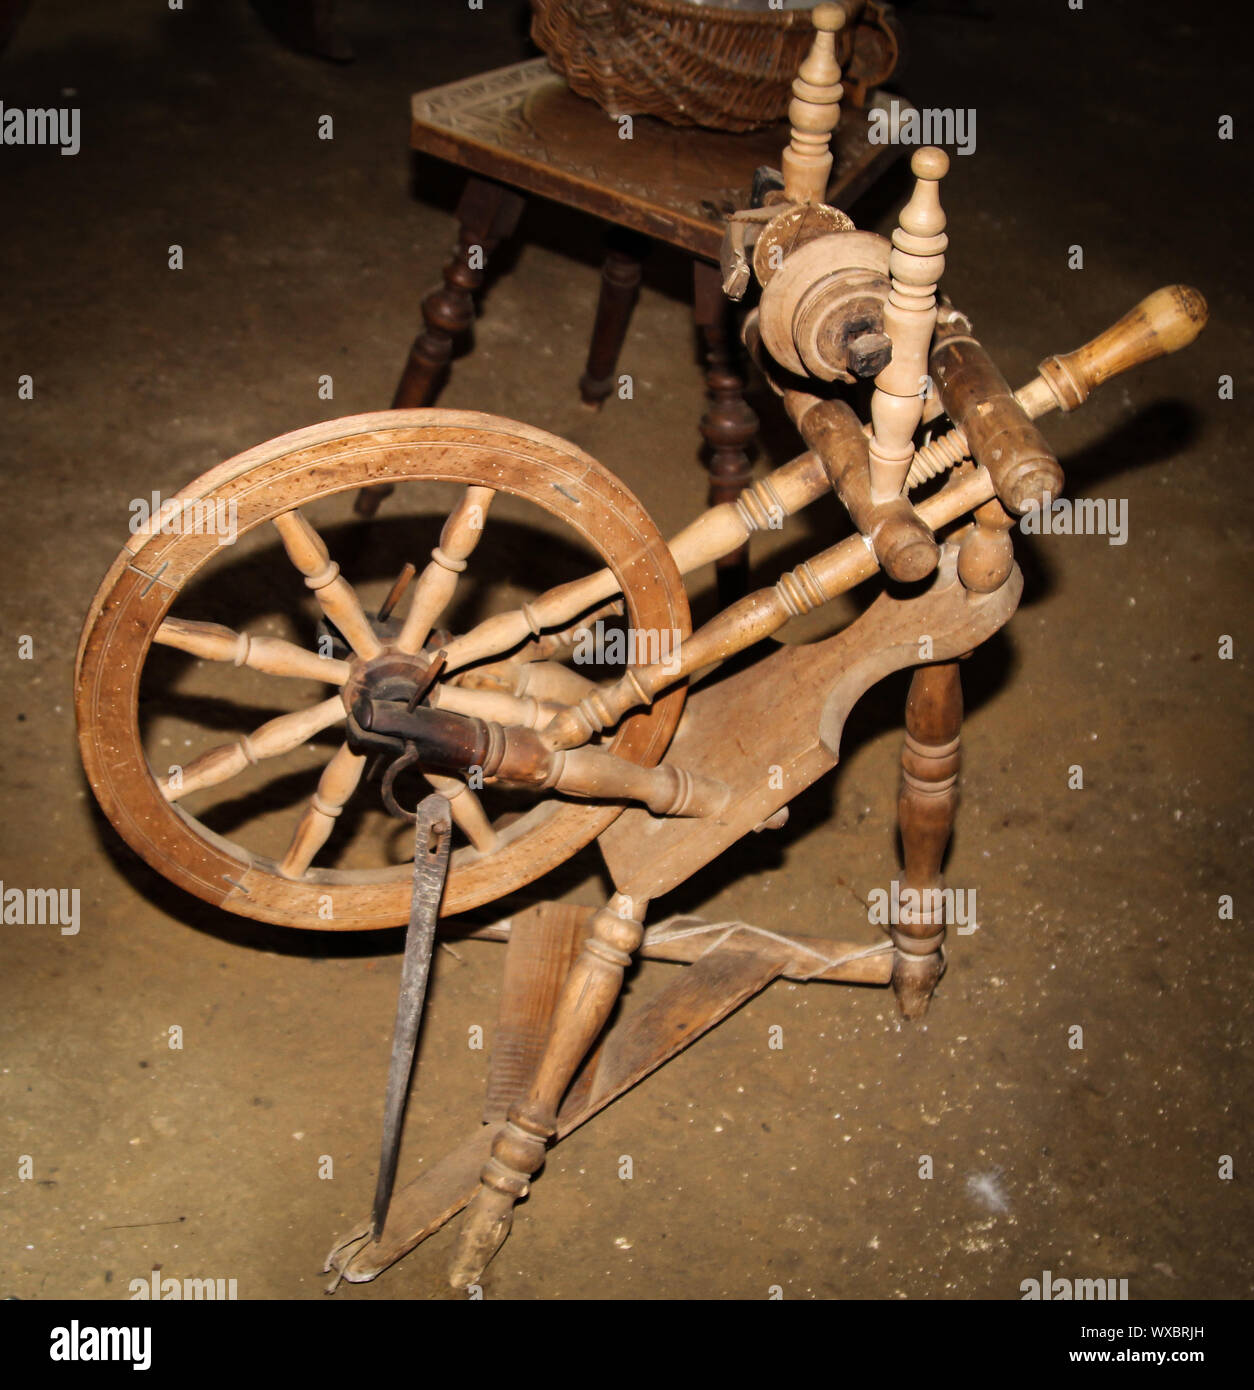 Wool Spinning Machine High Resolution Stock Photography And Images Alamy